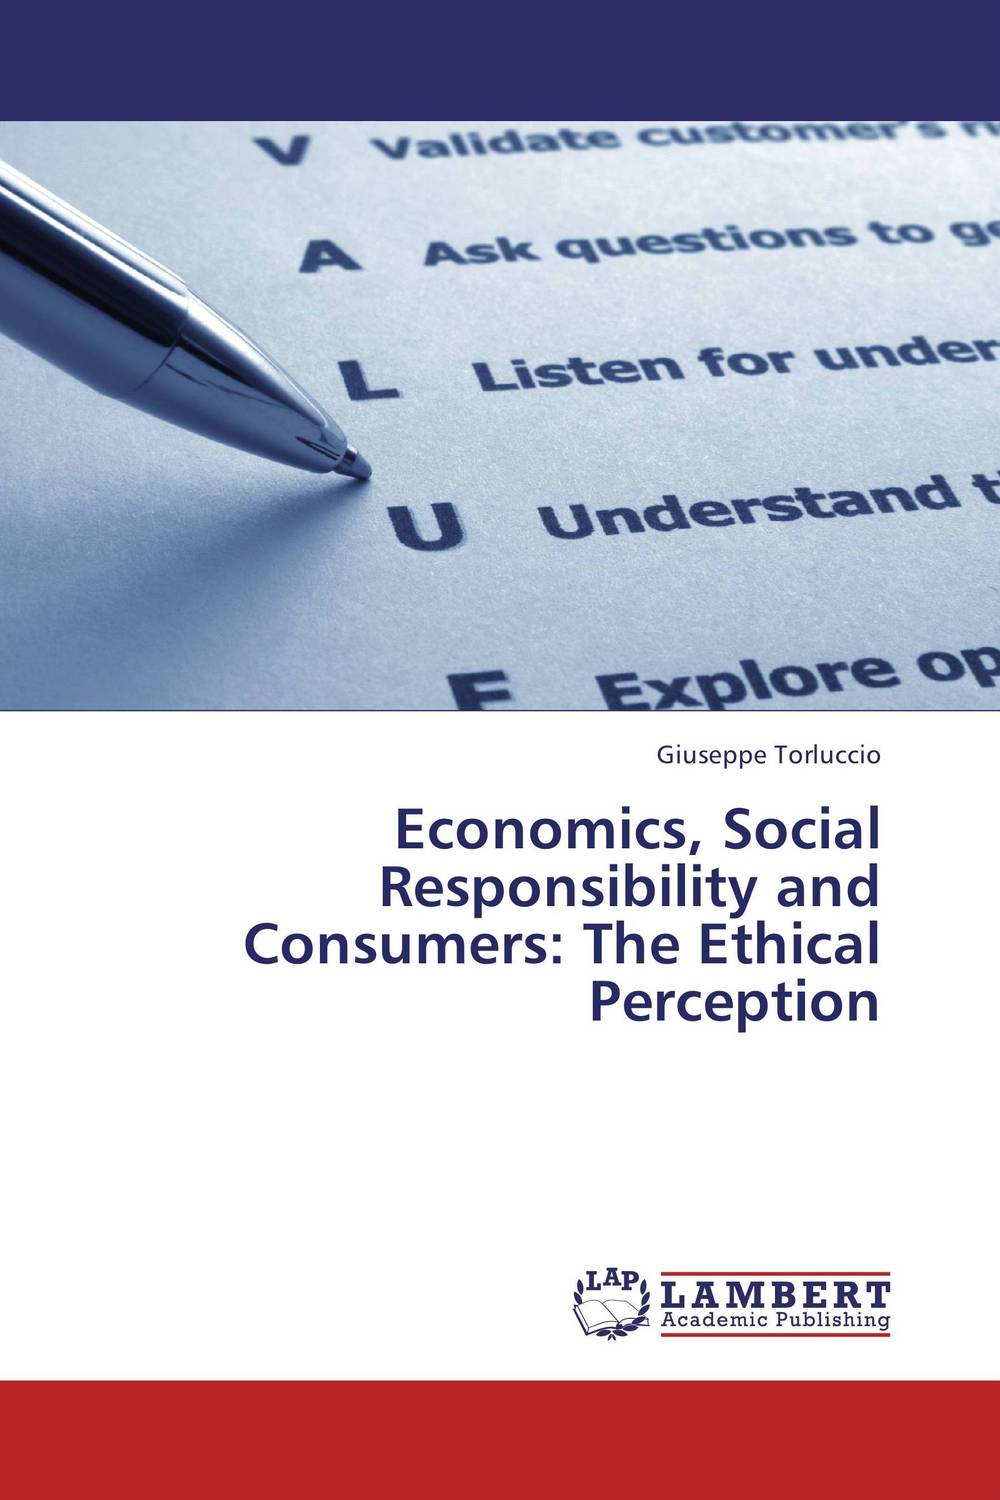 Economics, Social Responsibility and Consumers: The Ethical Perception